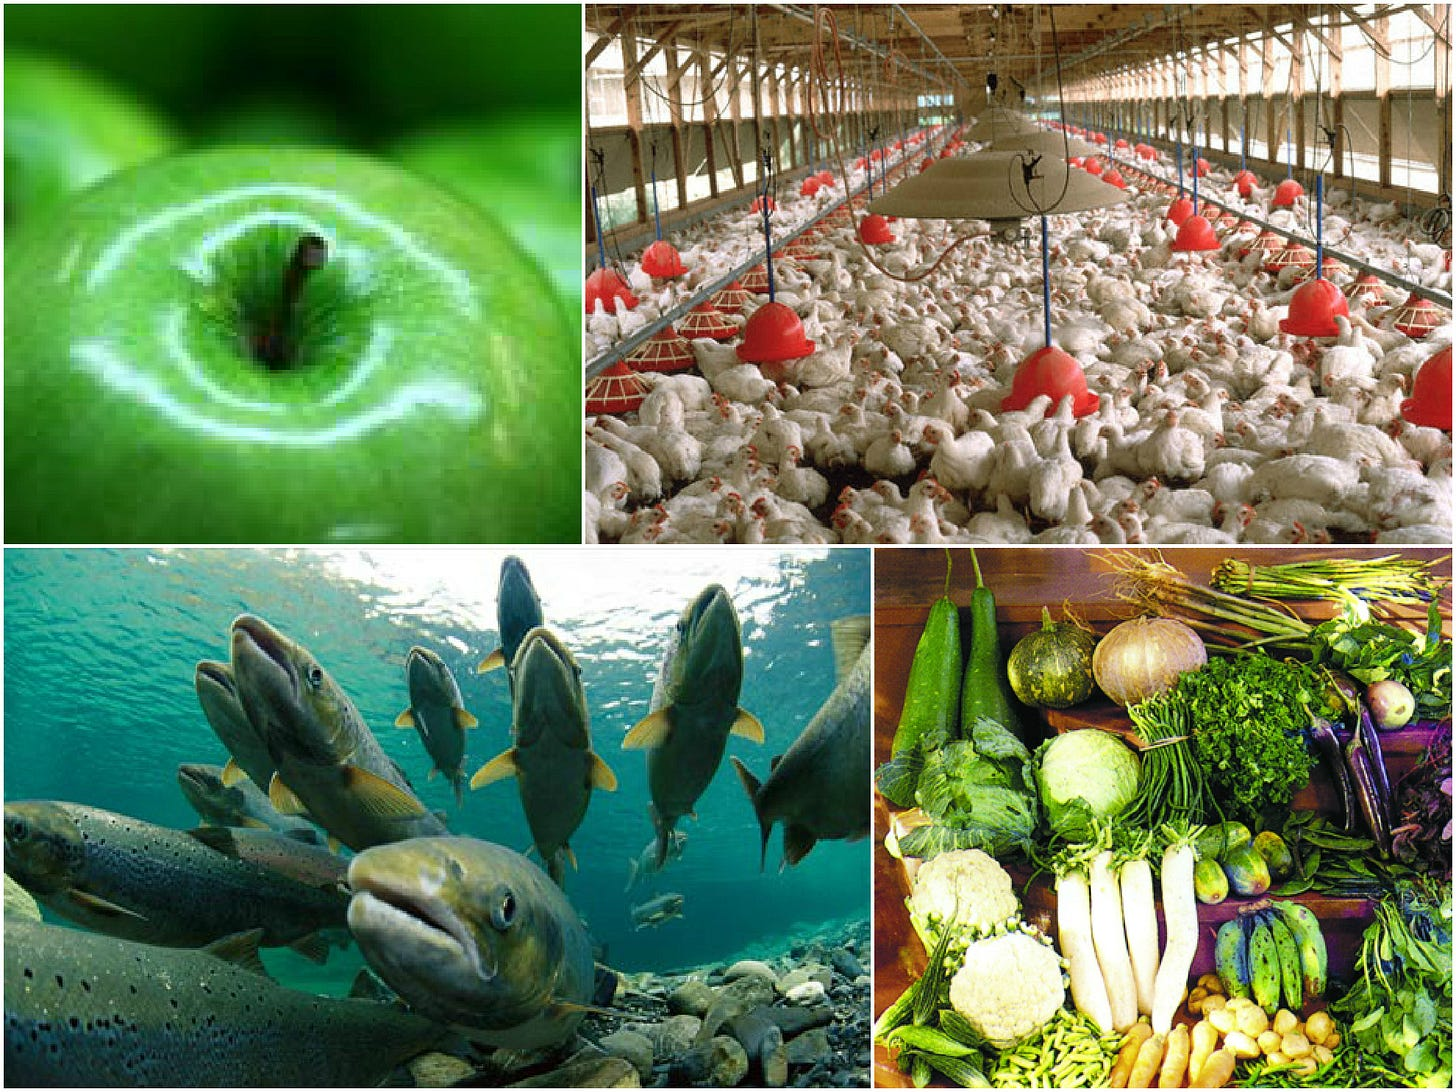 It makes the most sense, from an energy perspective, to grow vegetables, fruits, chicken and fish locally in Singapore.